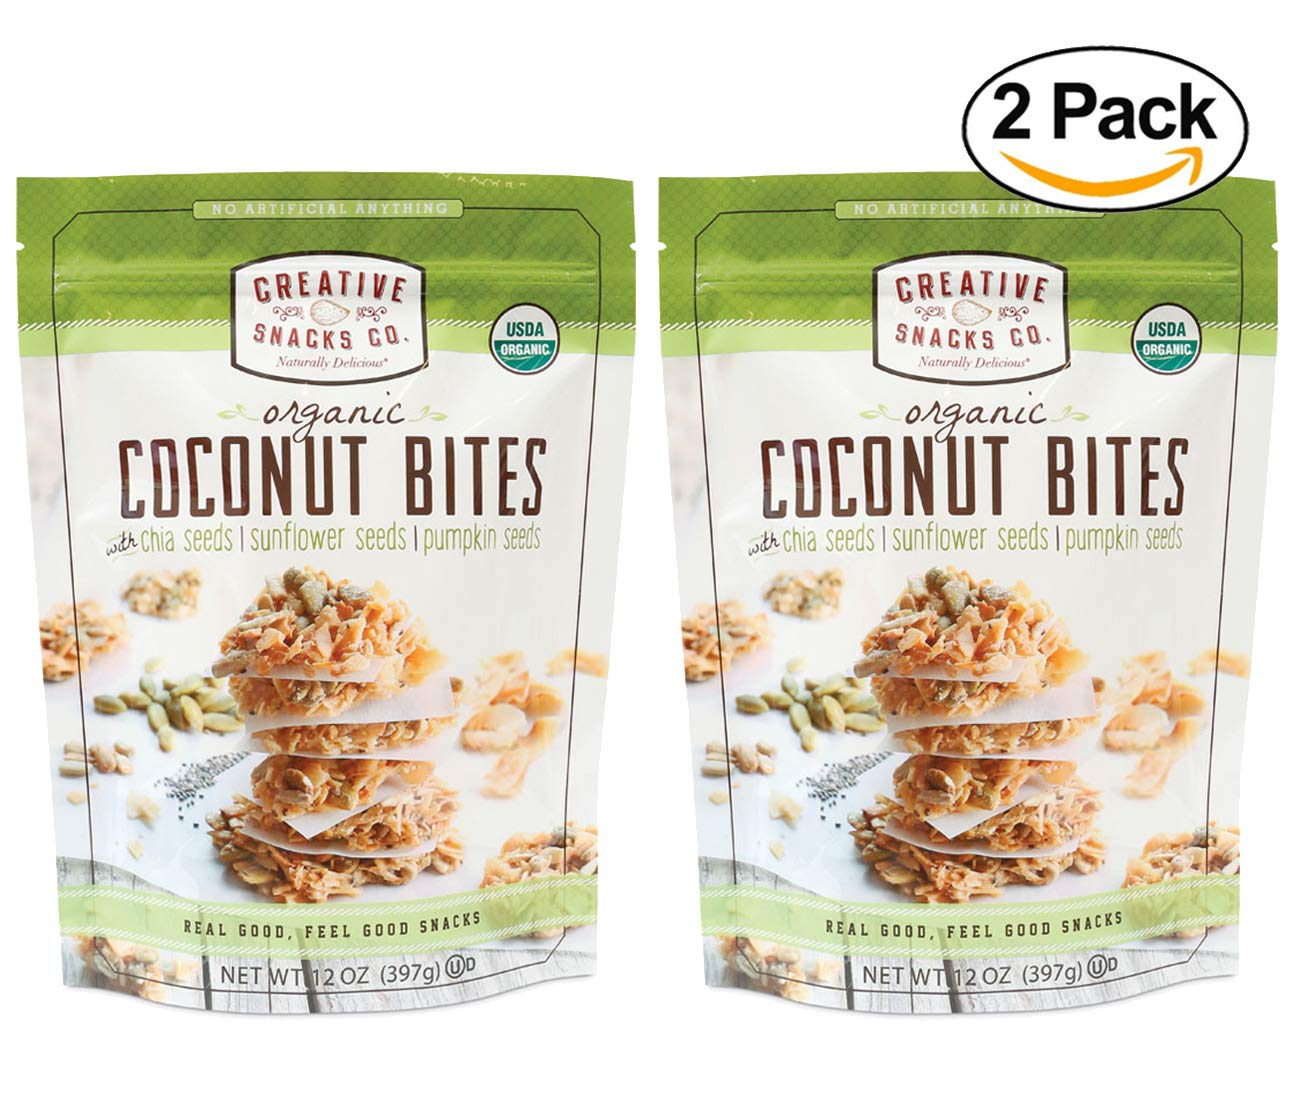 Creative Snacks Naturally Delicious Organic Coconut Bites with Chia, Sunflower and Pumpkin Seeds, 2 Pack, 12 Ounce Resealable Bags by Creative Snacks Co